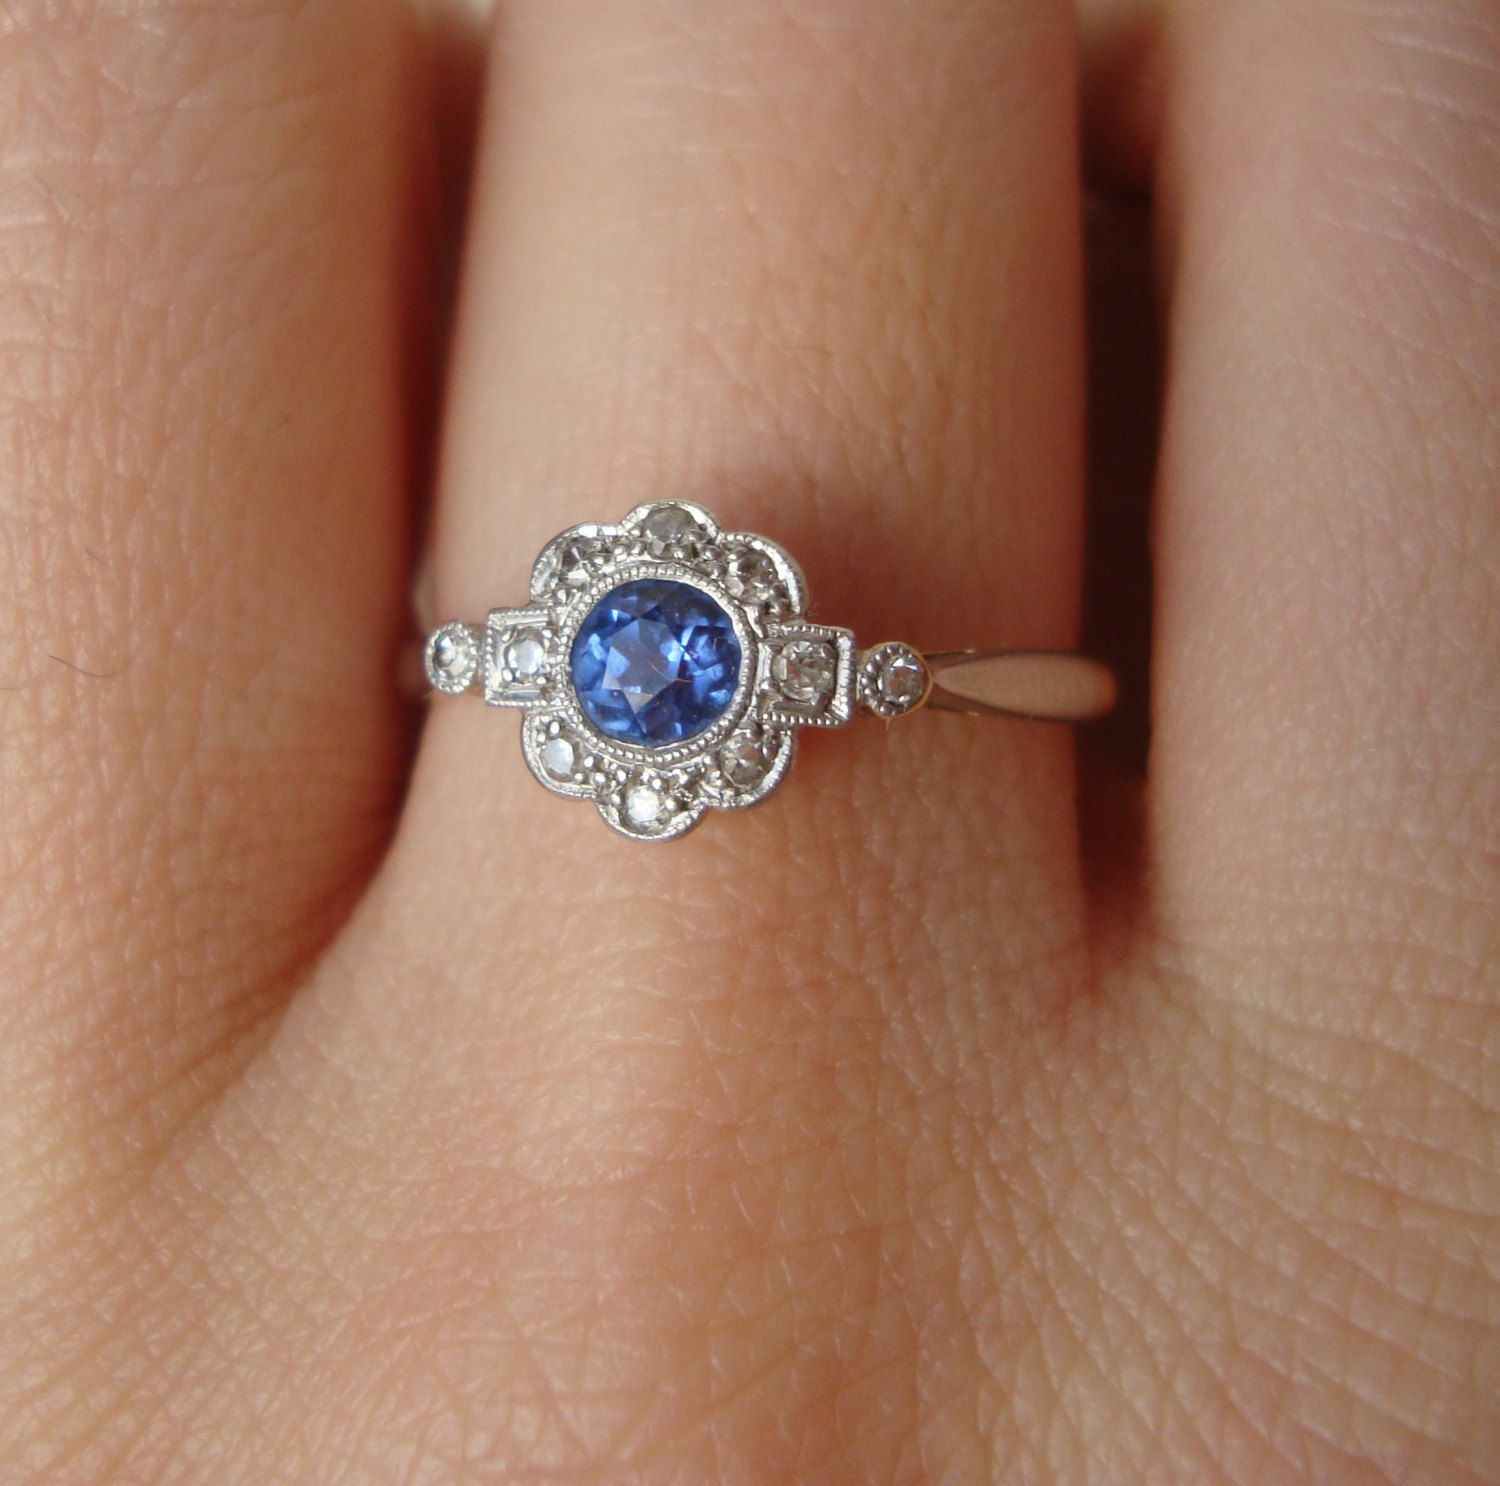 jewellery diamond cute natural rings pink wedding engagement blue ring ksvhs solitaire light